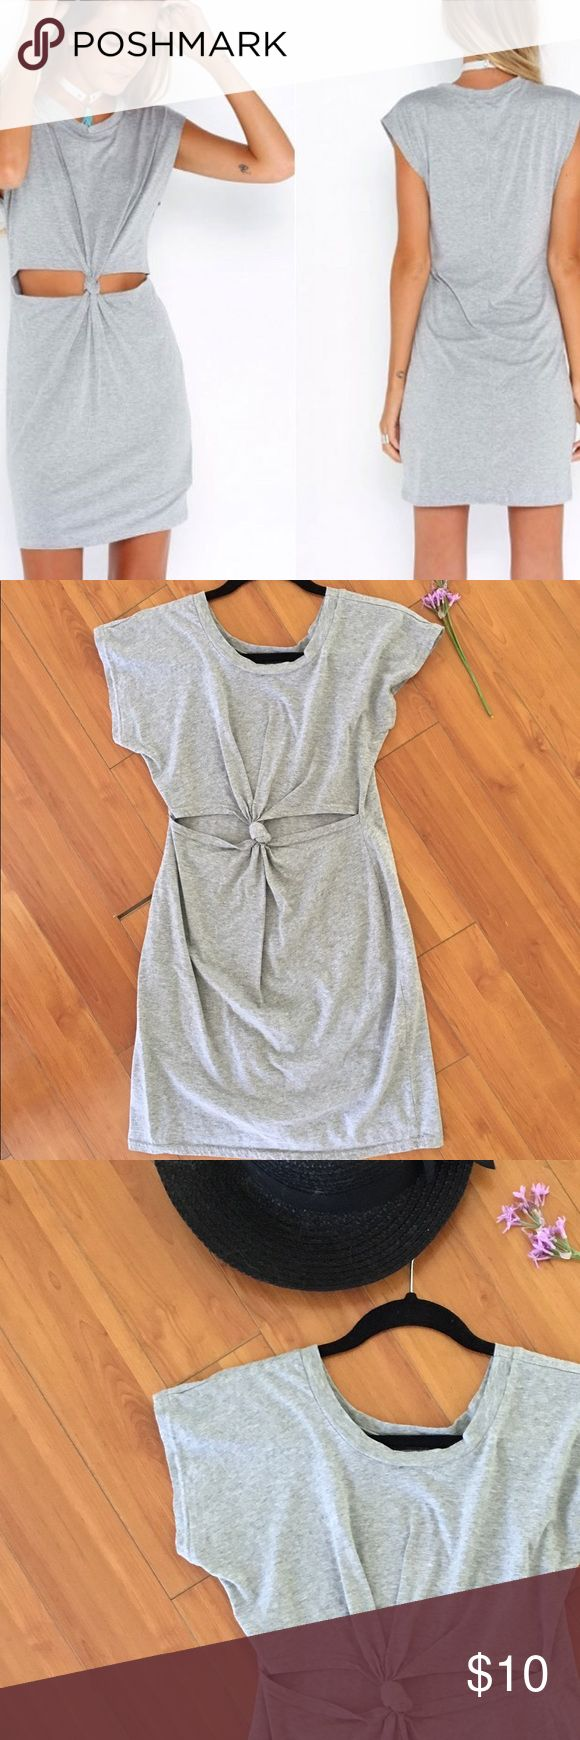 Grey casual dress 👗 Cute grey knot tied dress. Super cute as a casual or going out dress. 💕💕 Dresses